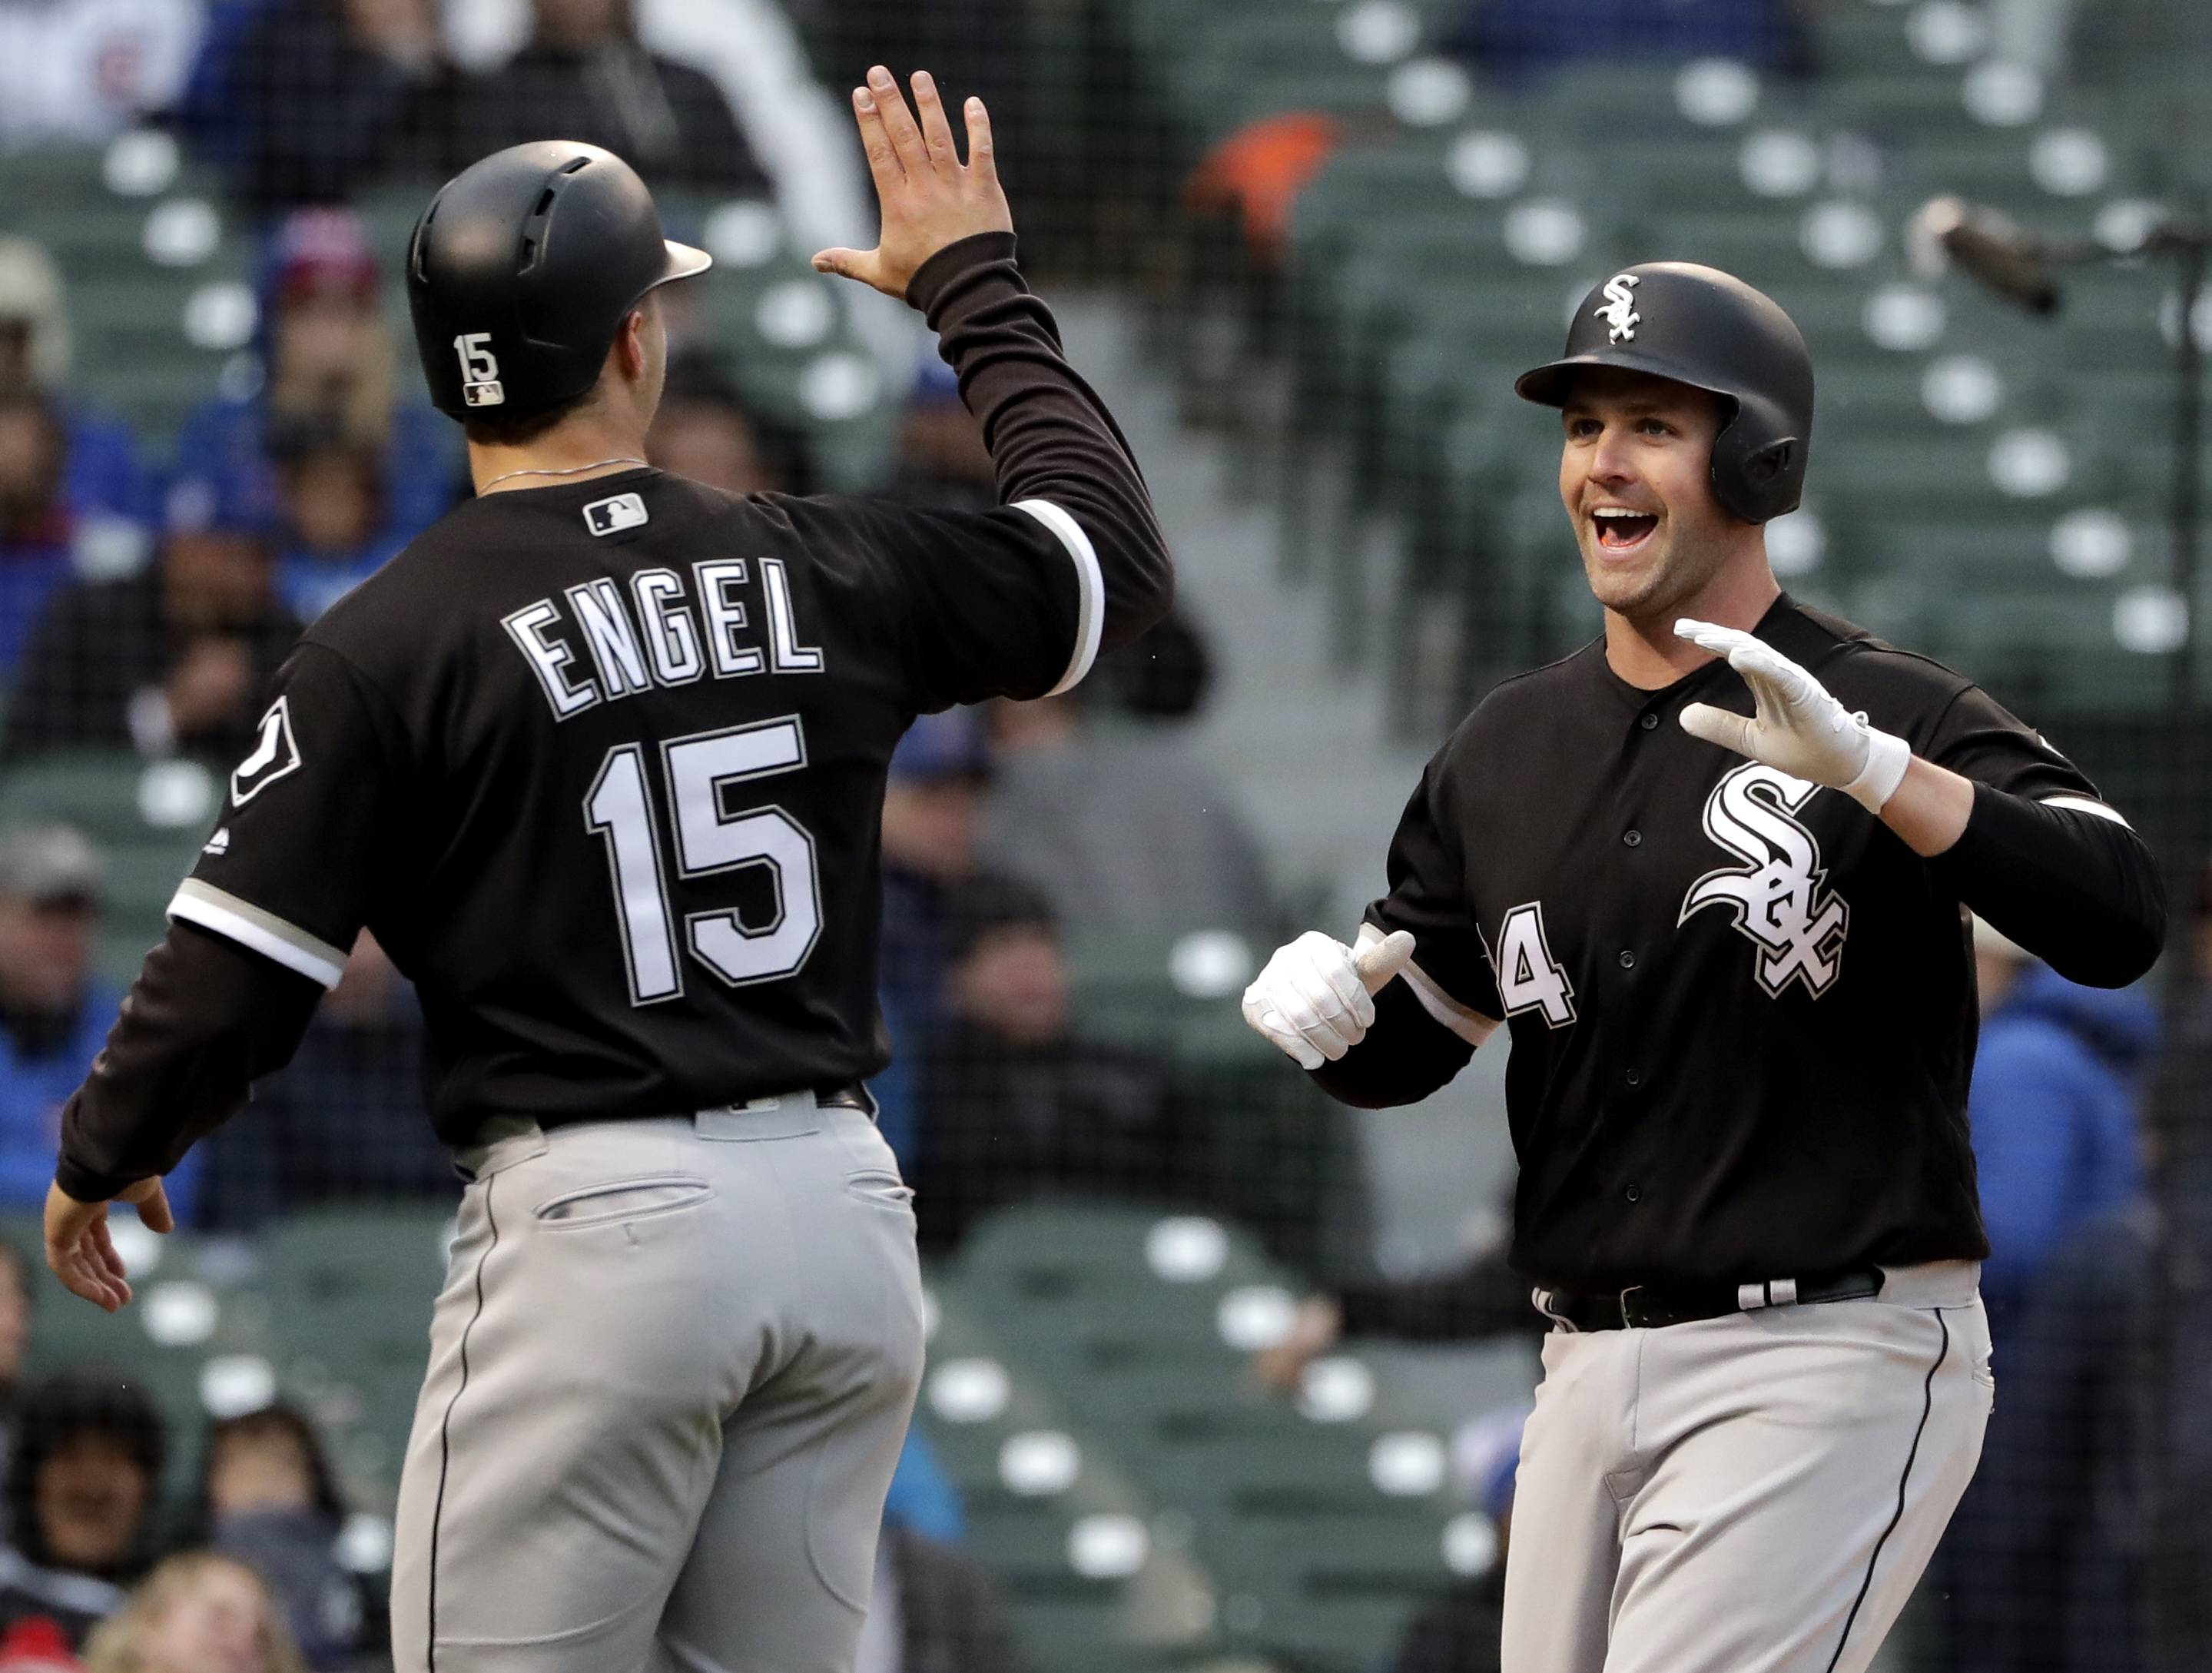 Chicago White Sox third baseman Matt Davidson, right, smiles as he celebrates with outfielder Adam Engel after hitting a 3-run homer against the Cubs during Game 2 of the 2018 Crosstown Classic. It's been another tough season for the White Sox, but they can get a jump on their promising future with a strong showing against the rival Chicago Cubs this weekend at Guaranteed Rate Field.